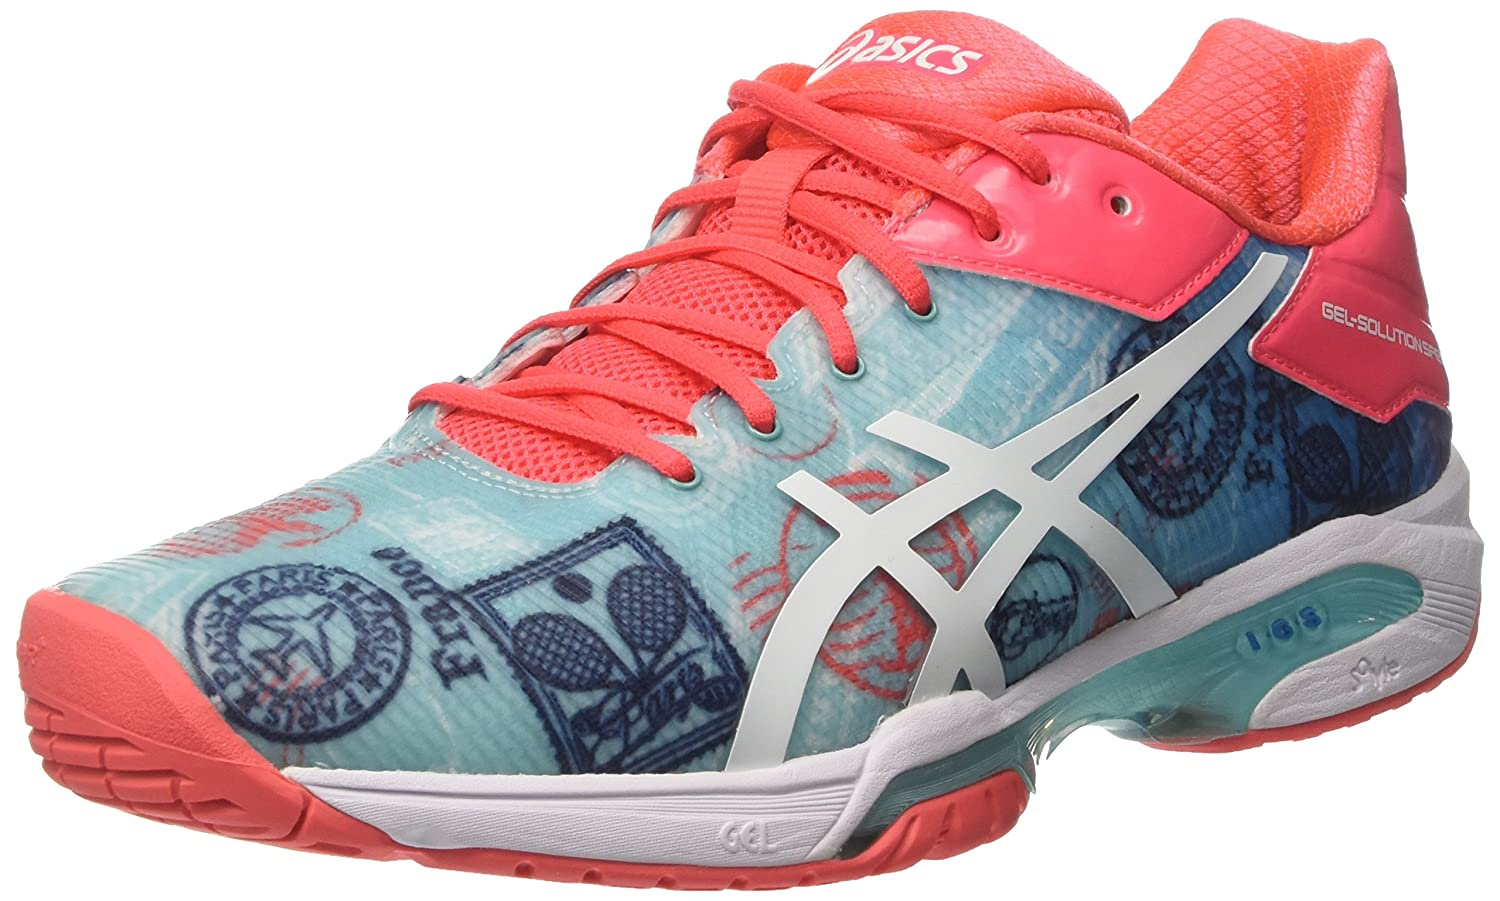 Asics Gel-Solution Speed 3 L.e. Paris, Zapatillas de Deporte para Mujer 40.5 EU|Multicolor (Diva Blue/White/Dive Pink)